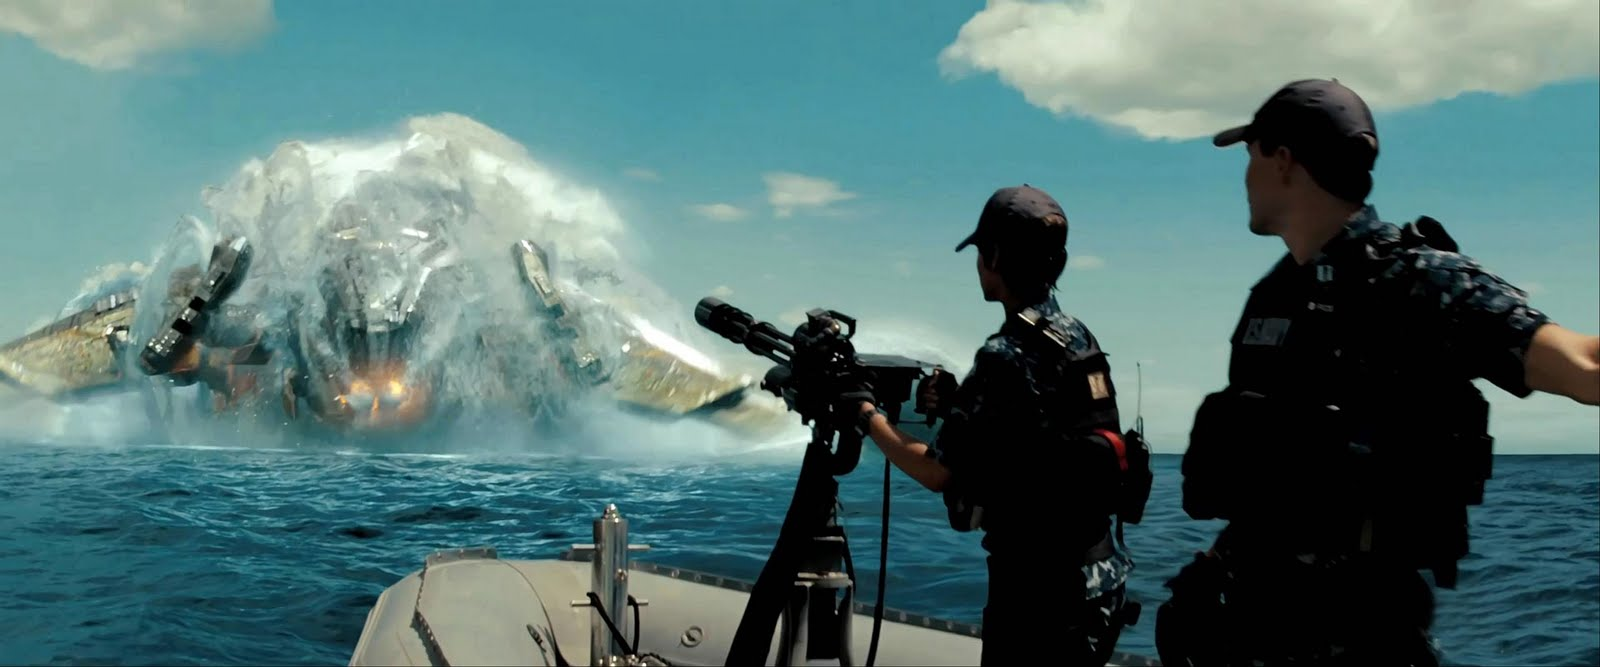 Battleship 2012 Poster HD Wallpapers Movie Wallpapers 1600x667